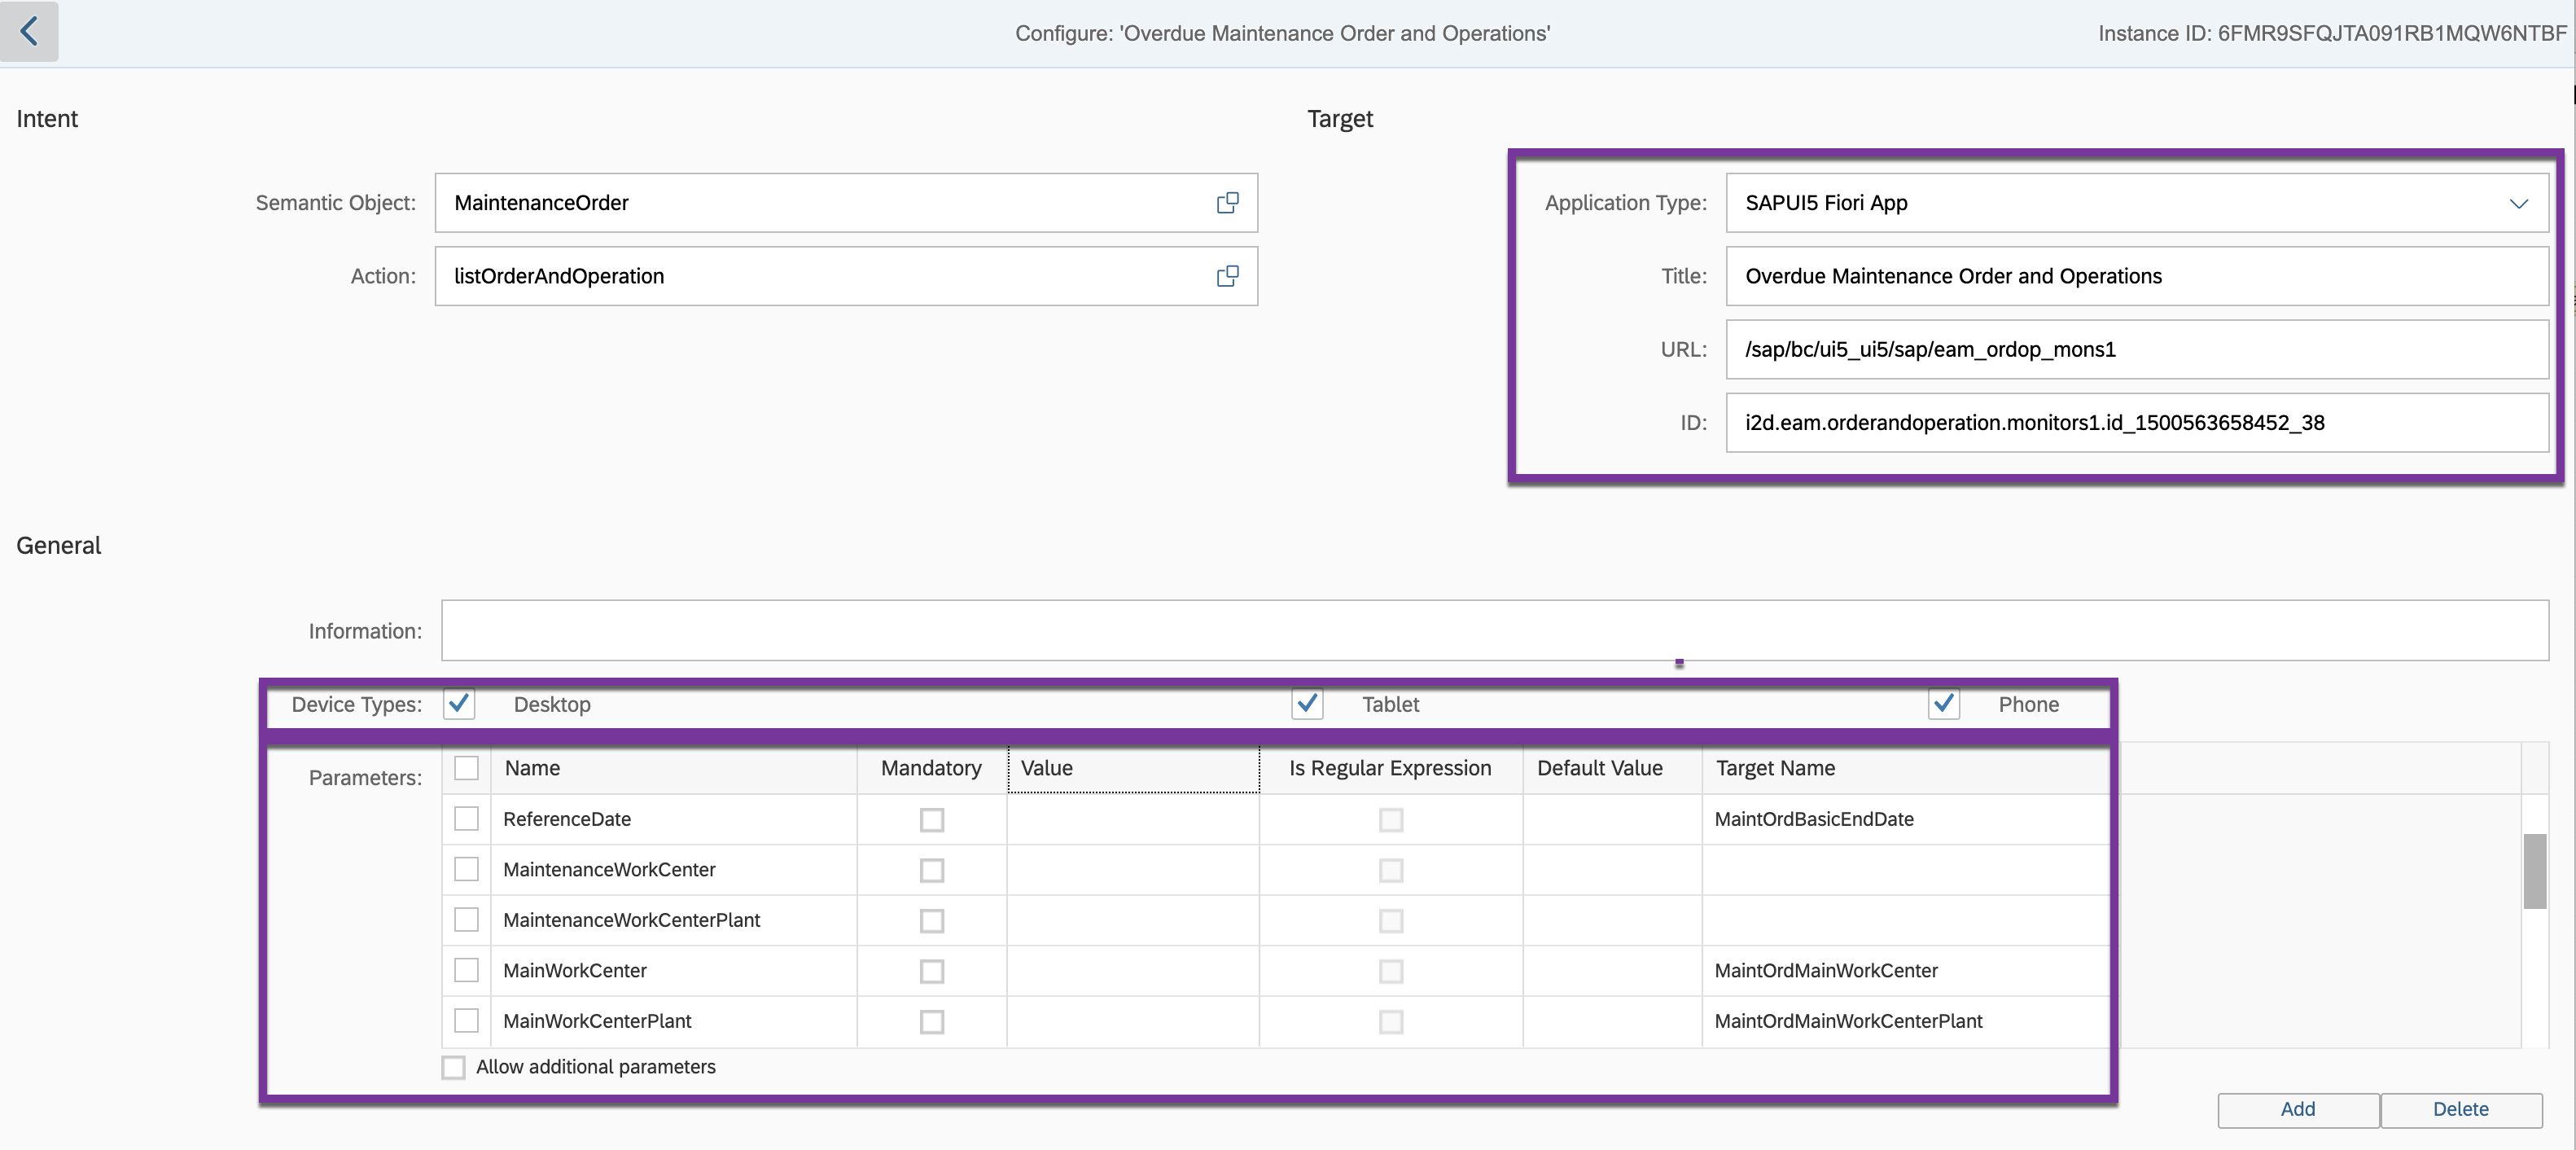 Example%20of%20a%20target%20mapping%20for%20a%20SAP%20Fiori%20app